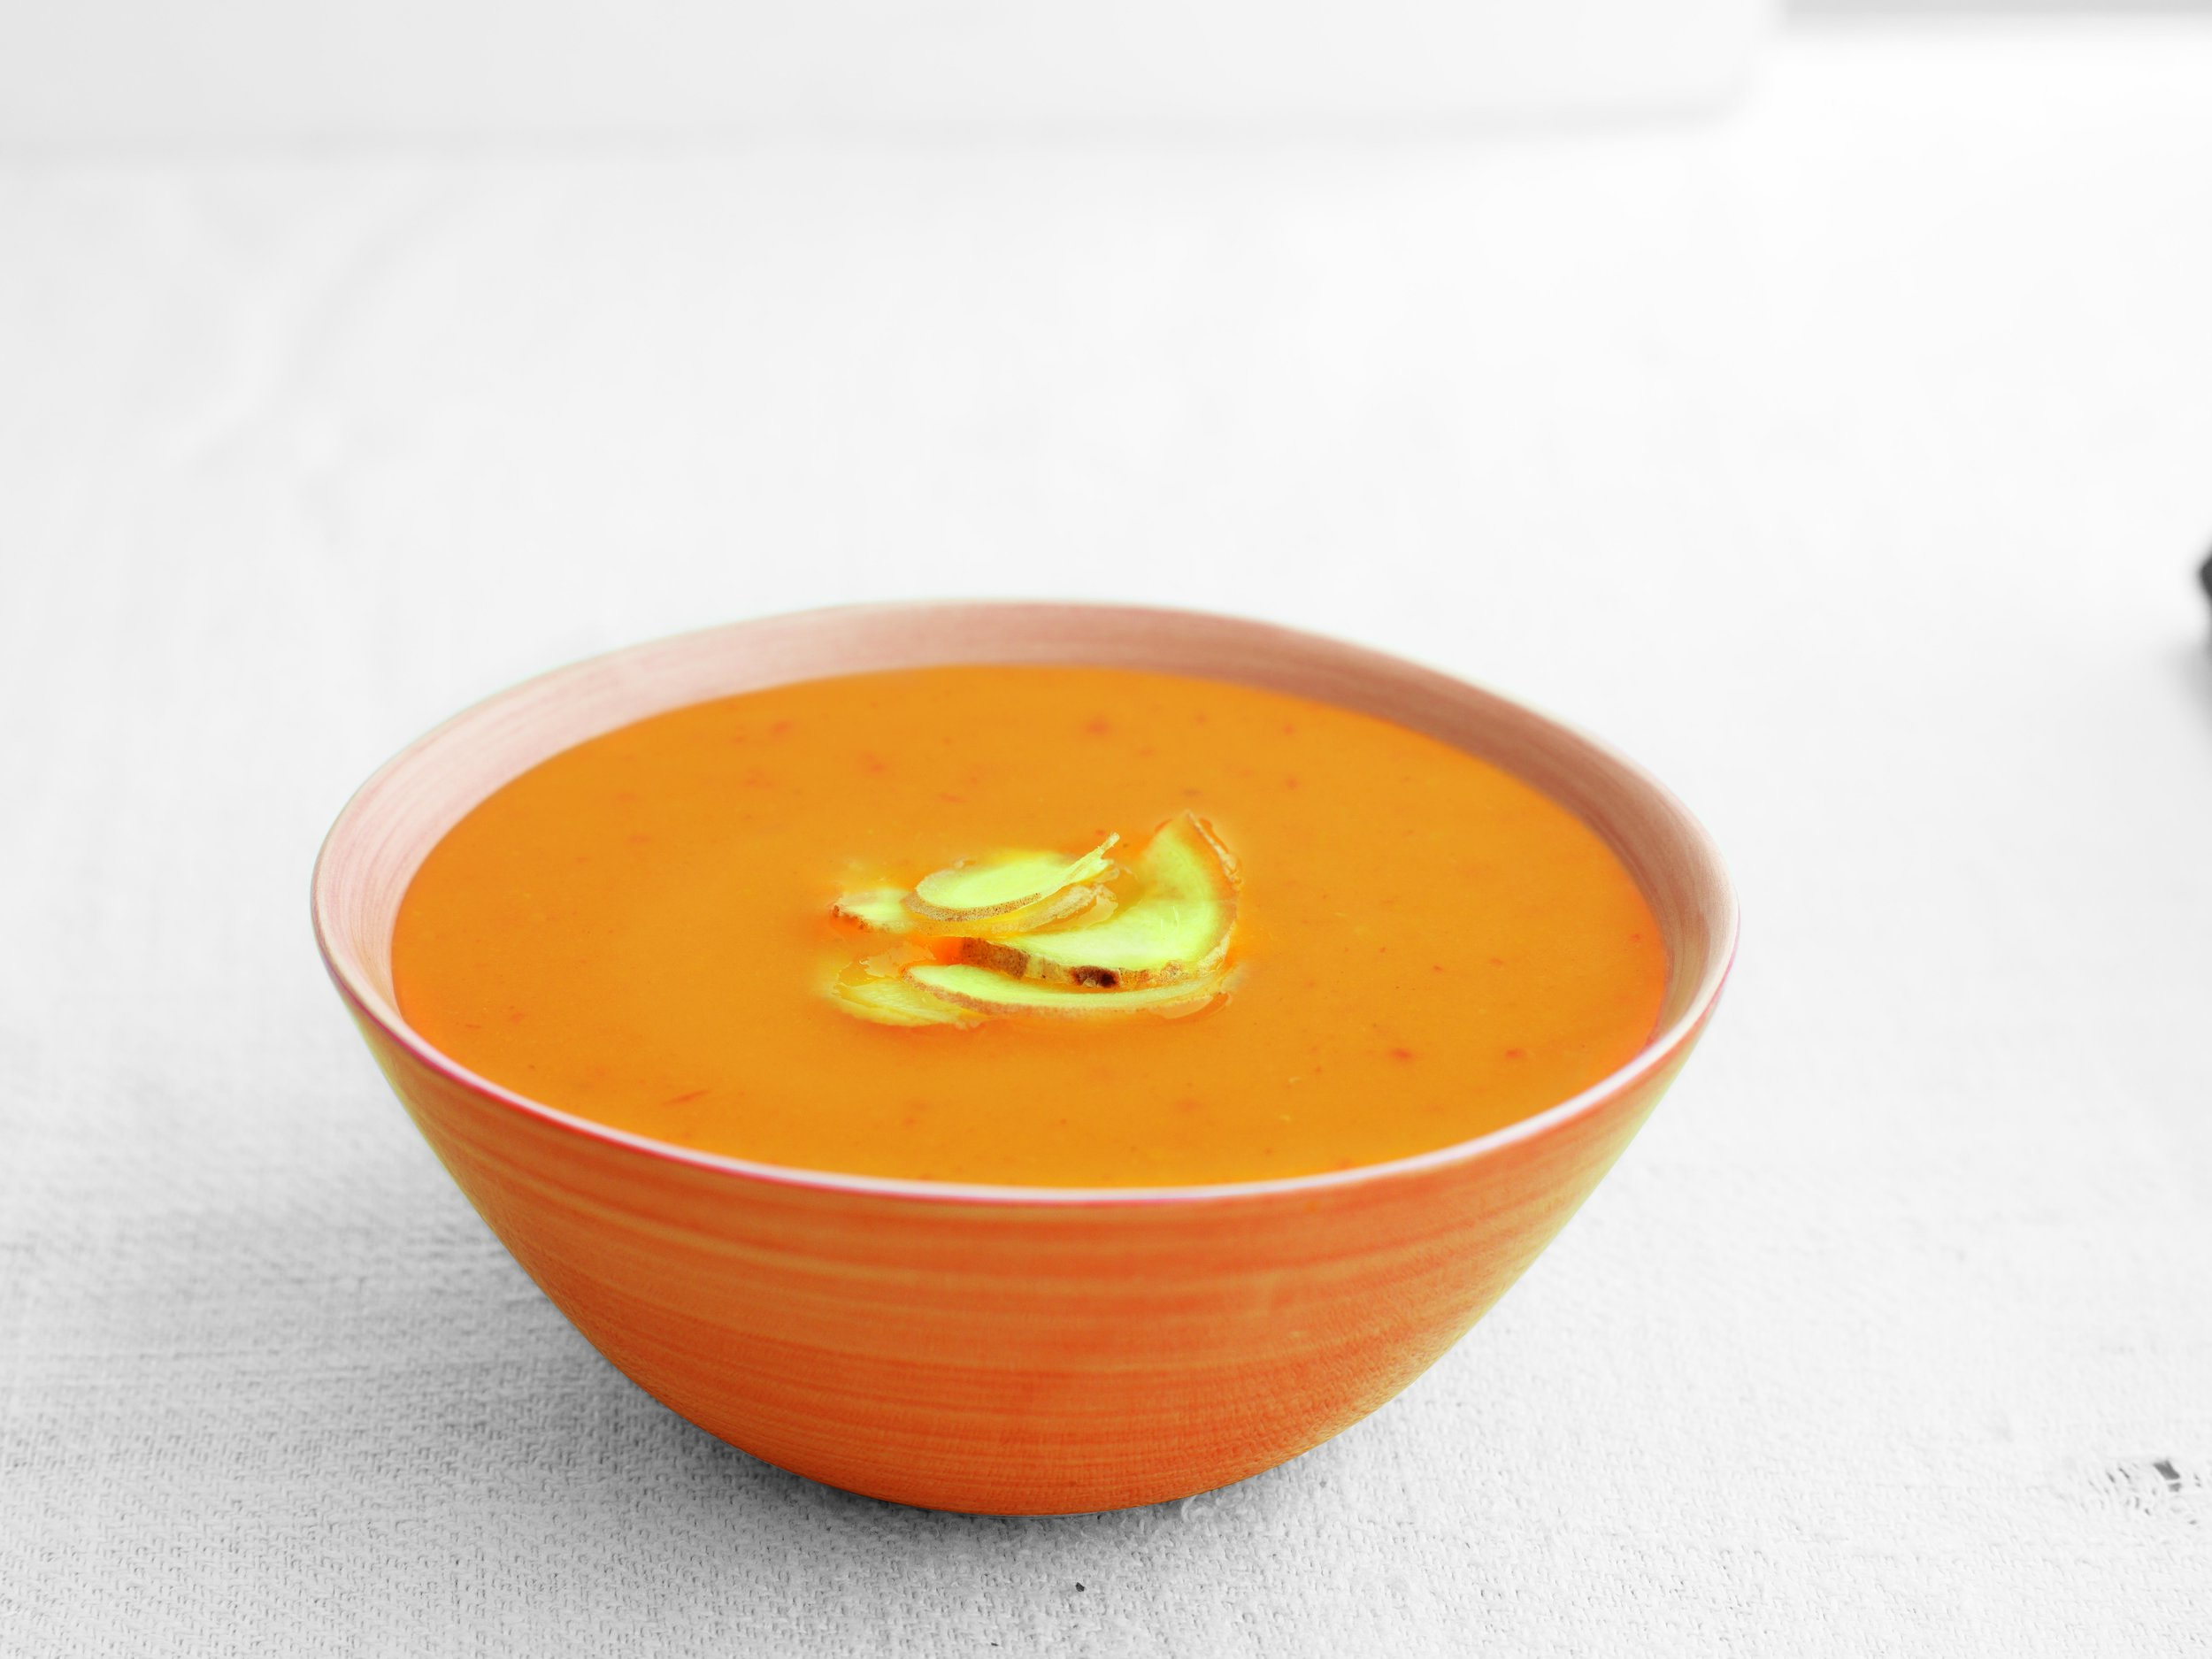 Butternut Squash & Ginger - A low fat soup made with butternut squash balanced with a hint of fiery ginger.